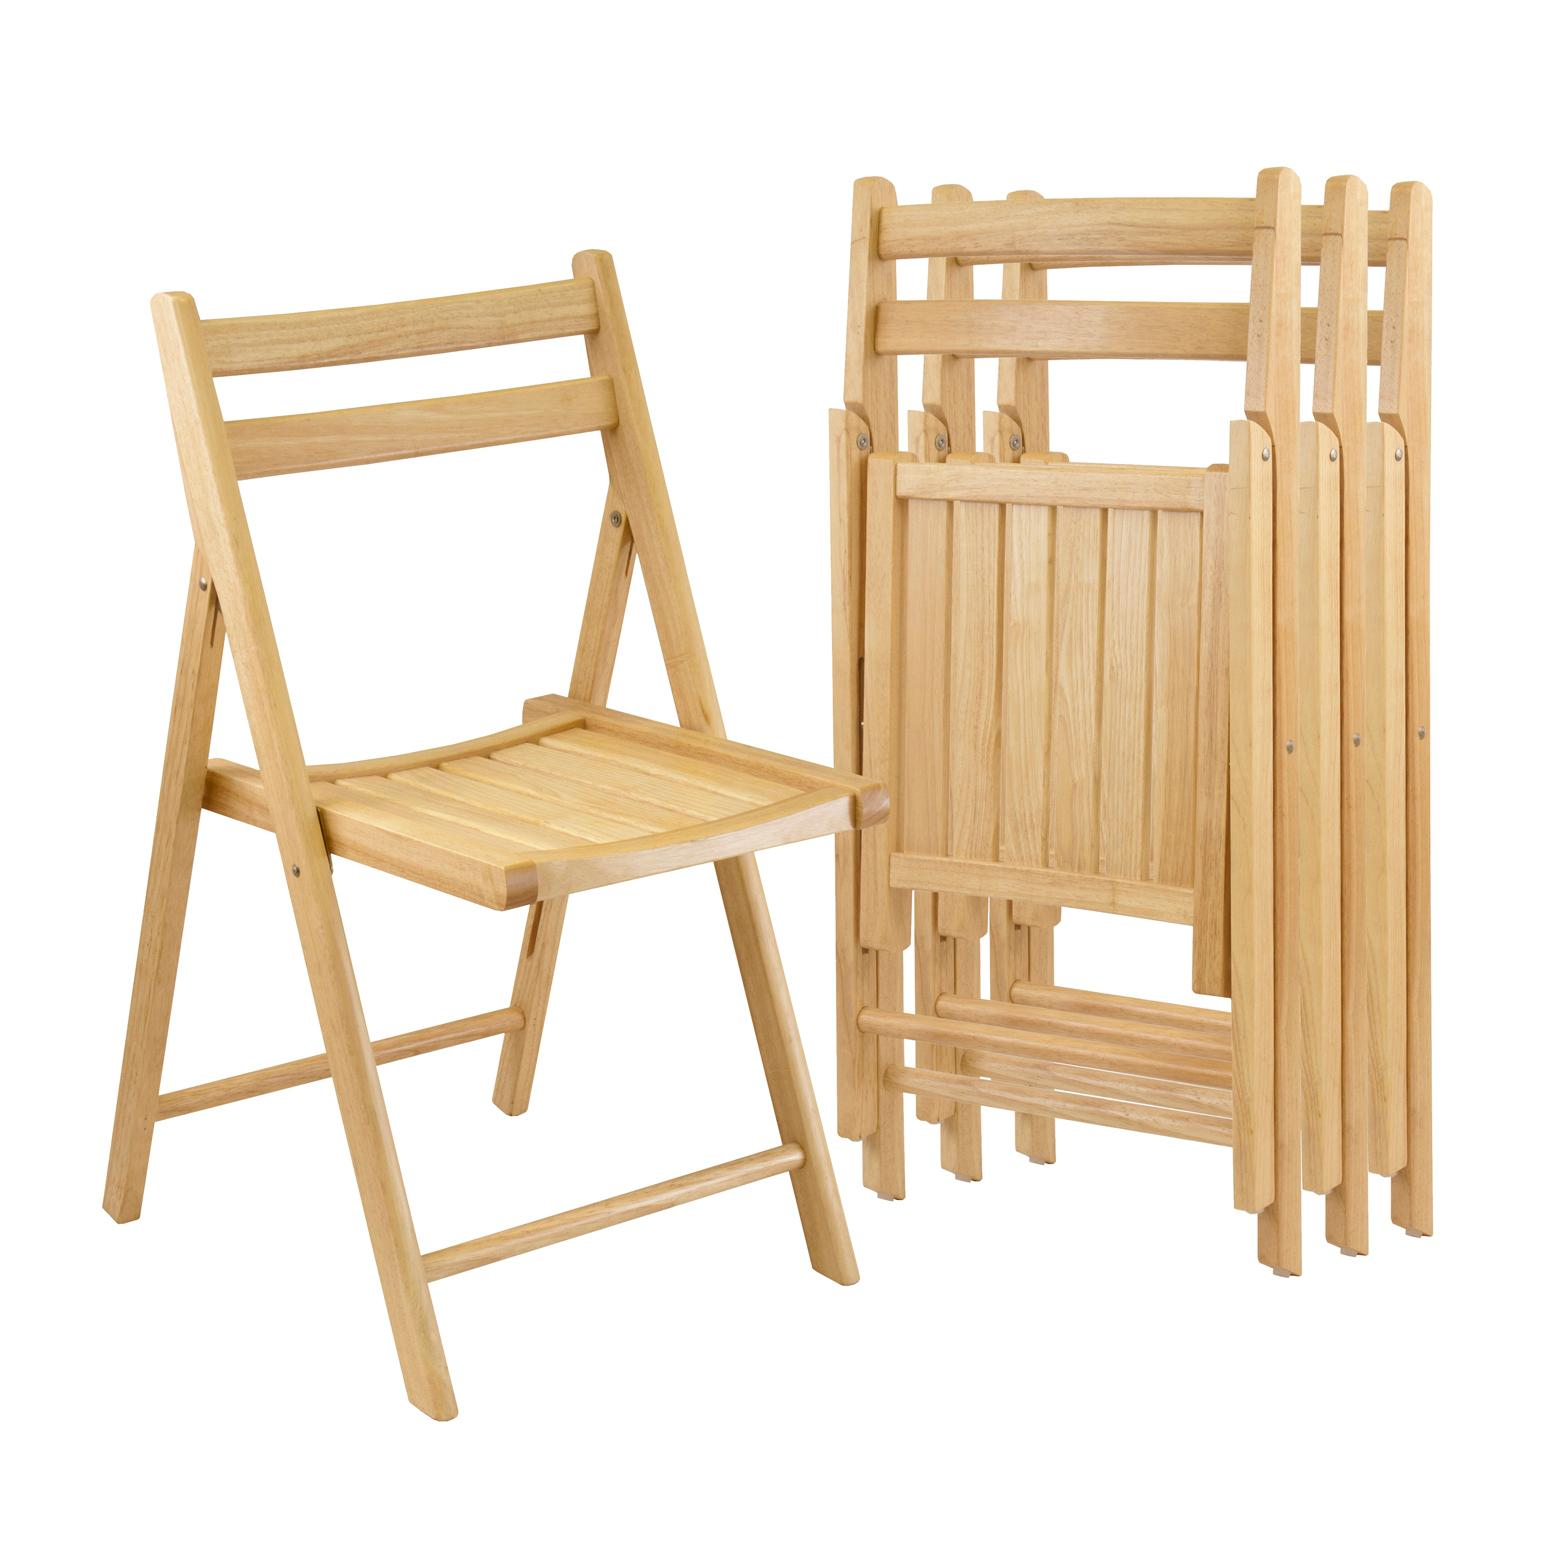 Kitchen Table And Chairs Amazon: Winsome Wood Folding Chairs, Natural Finish